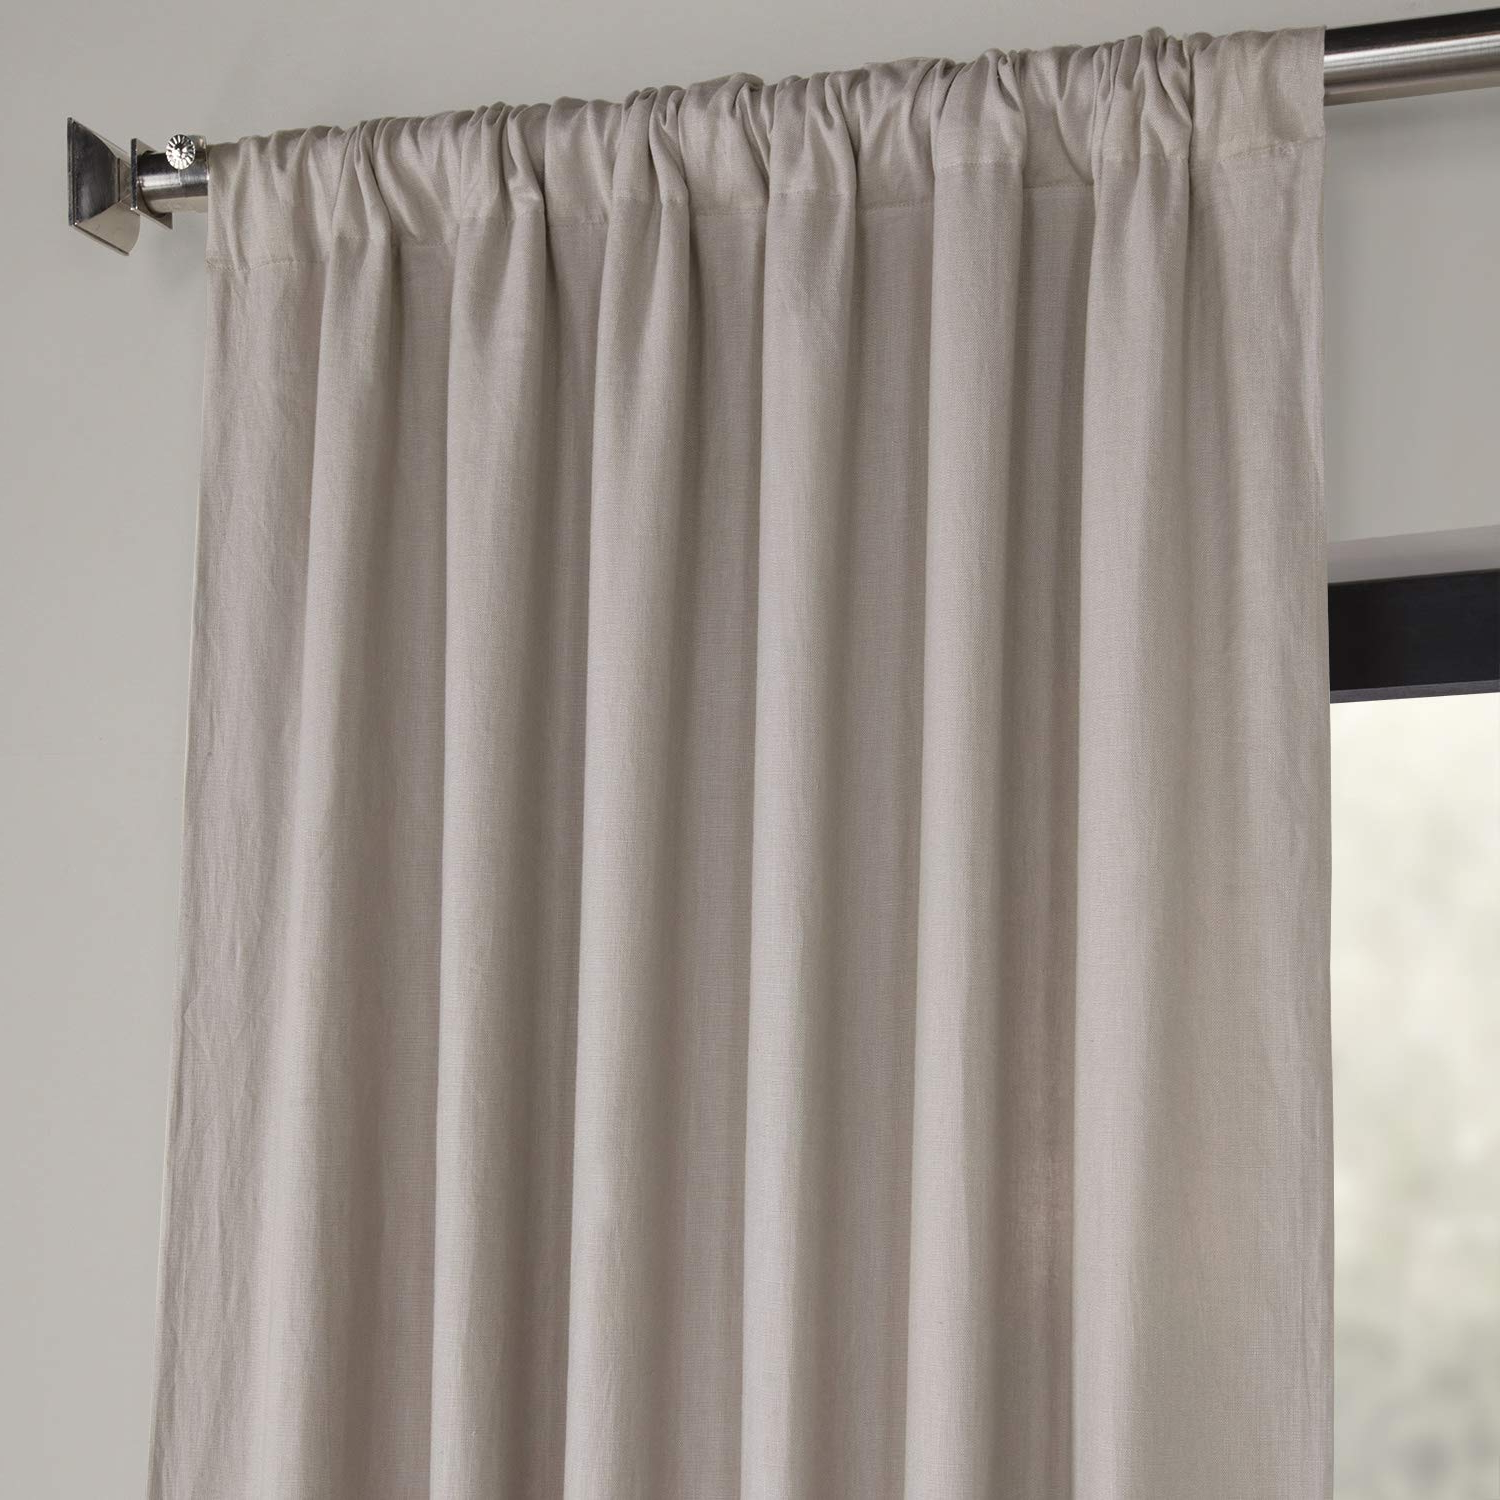 Latest Ln Xs1701 96 French Linen Curtain, Earl Grey, 50 X 96 With French Linen Lined Curtain Panels (View 13 of 20)